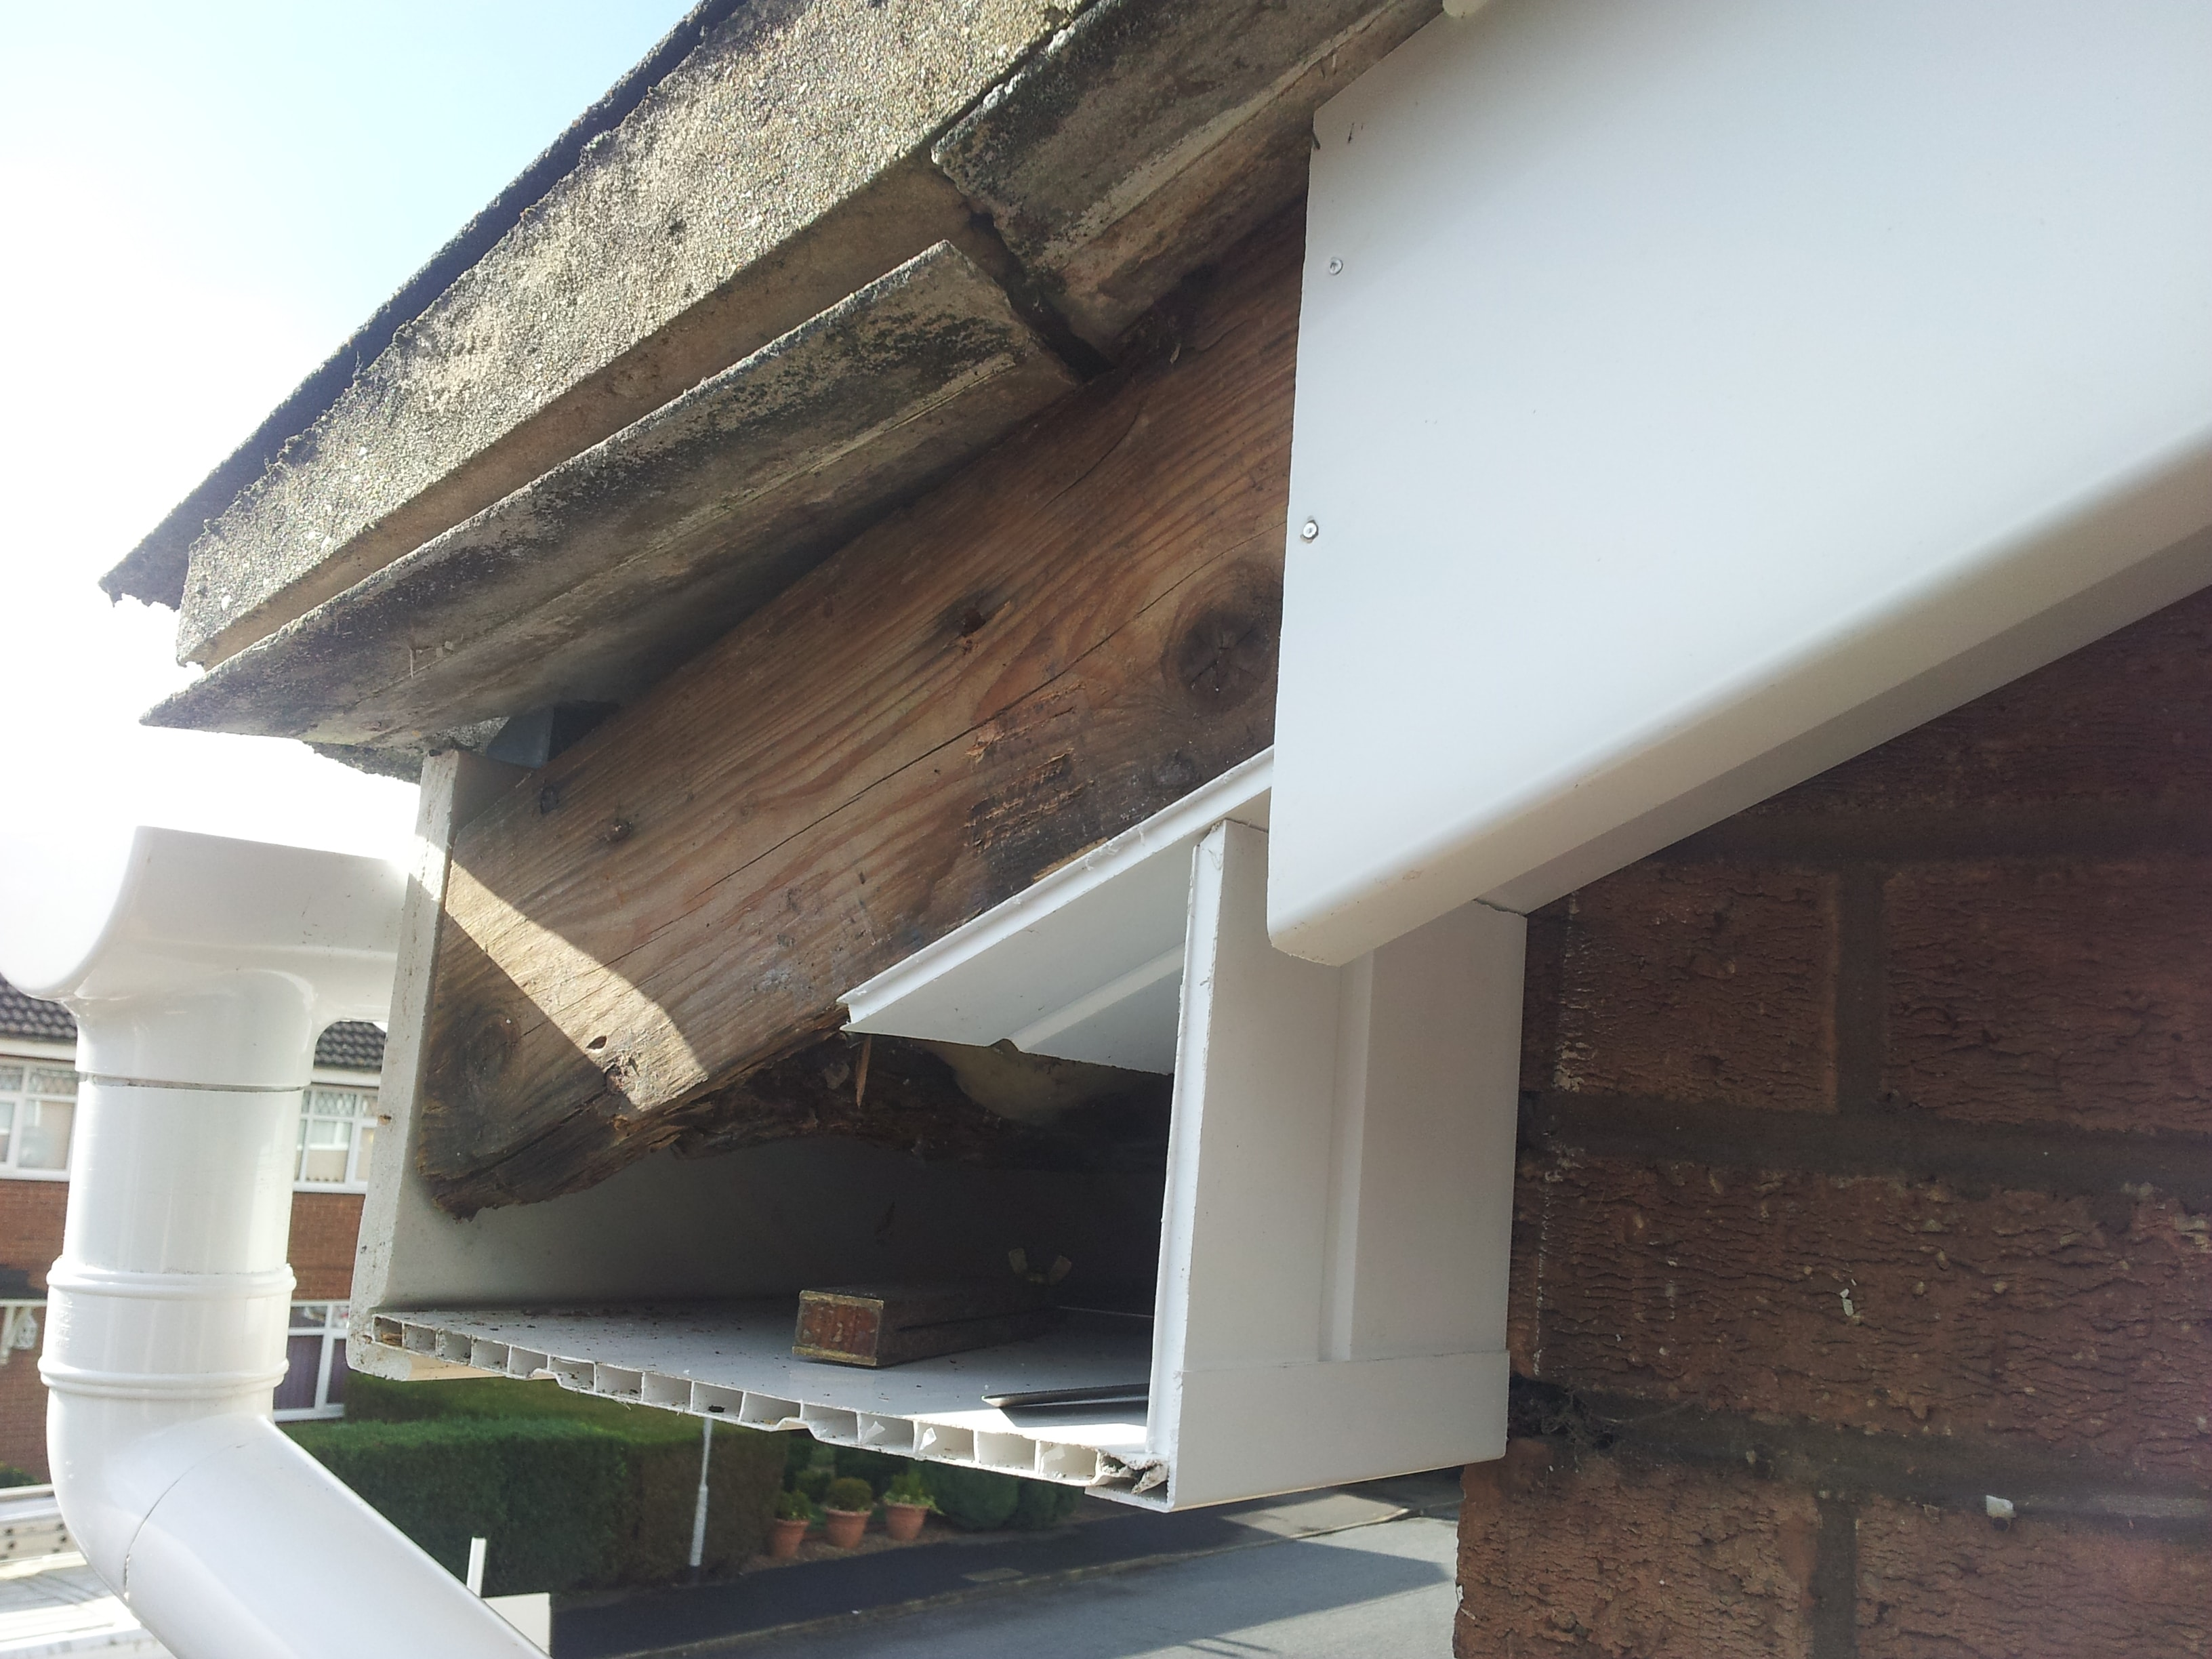 Gable rafter end